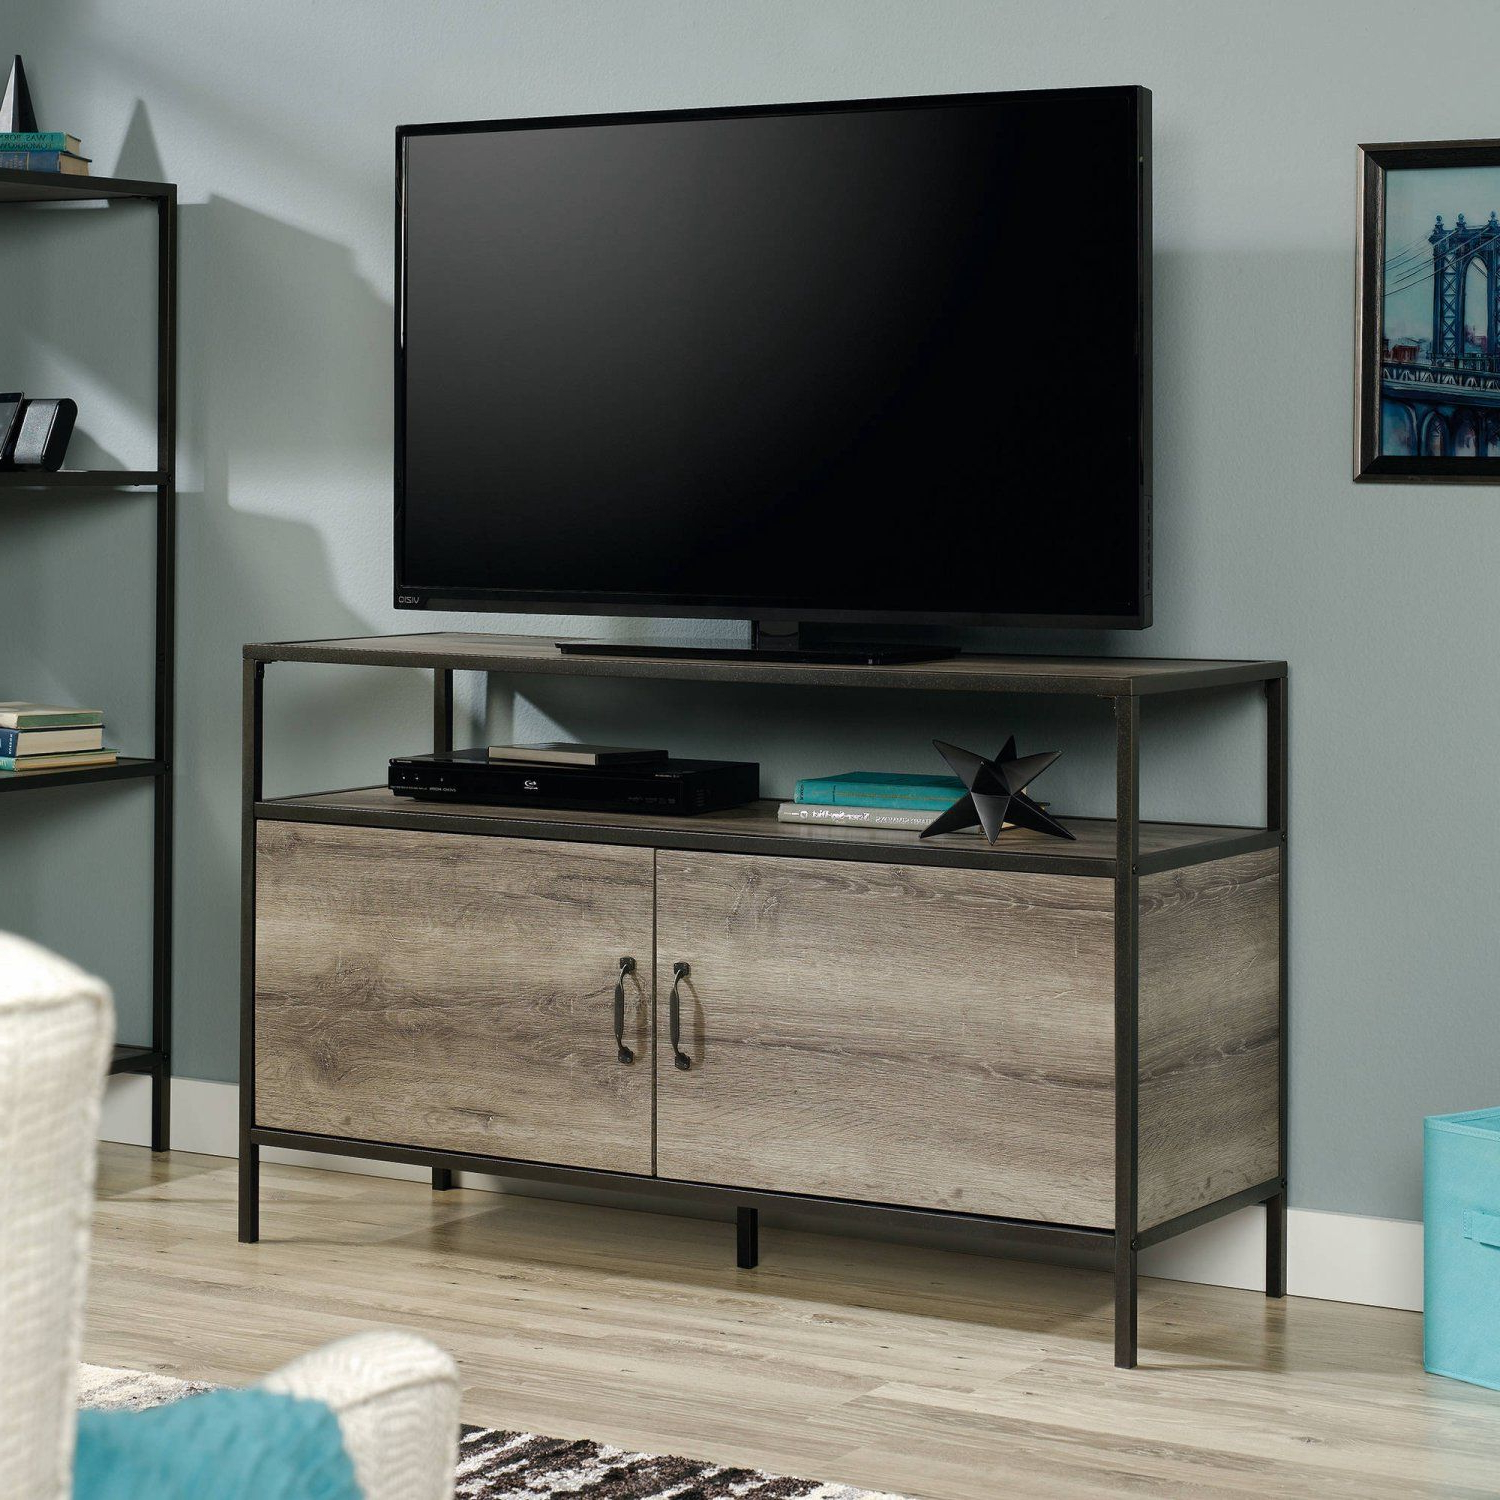 "Wood And Metal Tv Stands With Regard To Most Current Wood Metal Tv Stand 50"" With Grey Oak Storage Cabinets Media Table (View 18 of 20)"